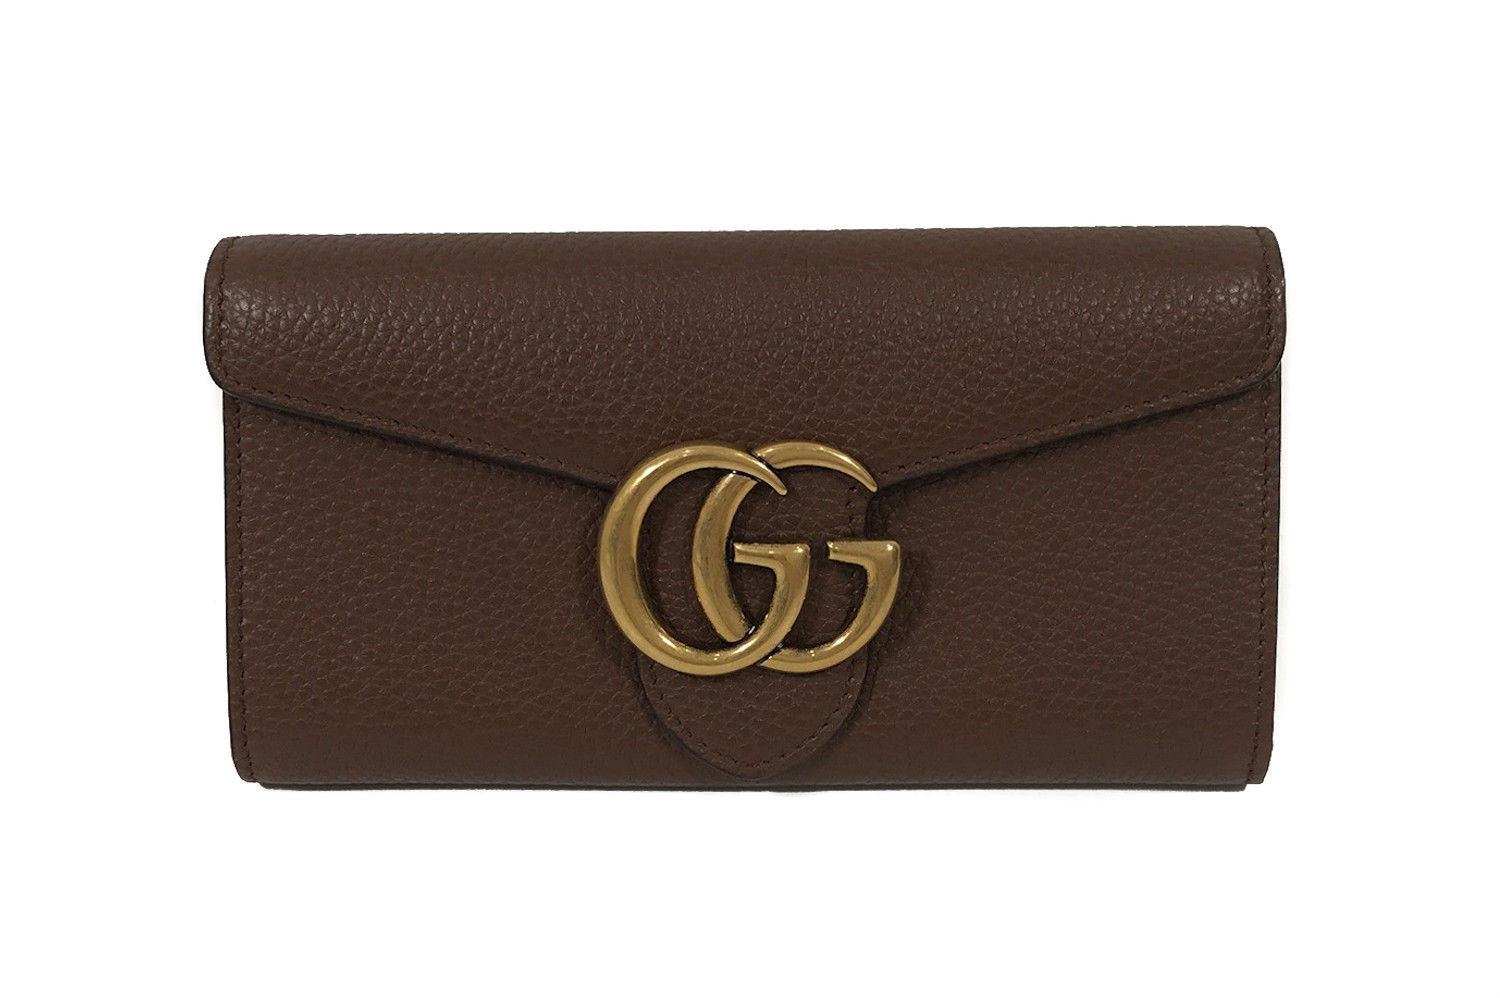 59b83e7c19d297 NWT GUCCI 400586 GG Marmont Leather Wallet, and 50 similar items